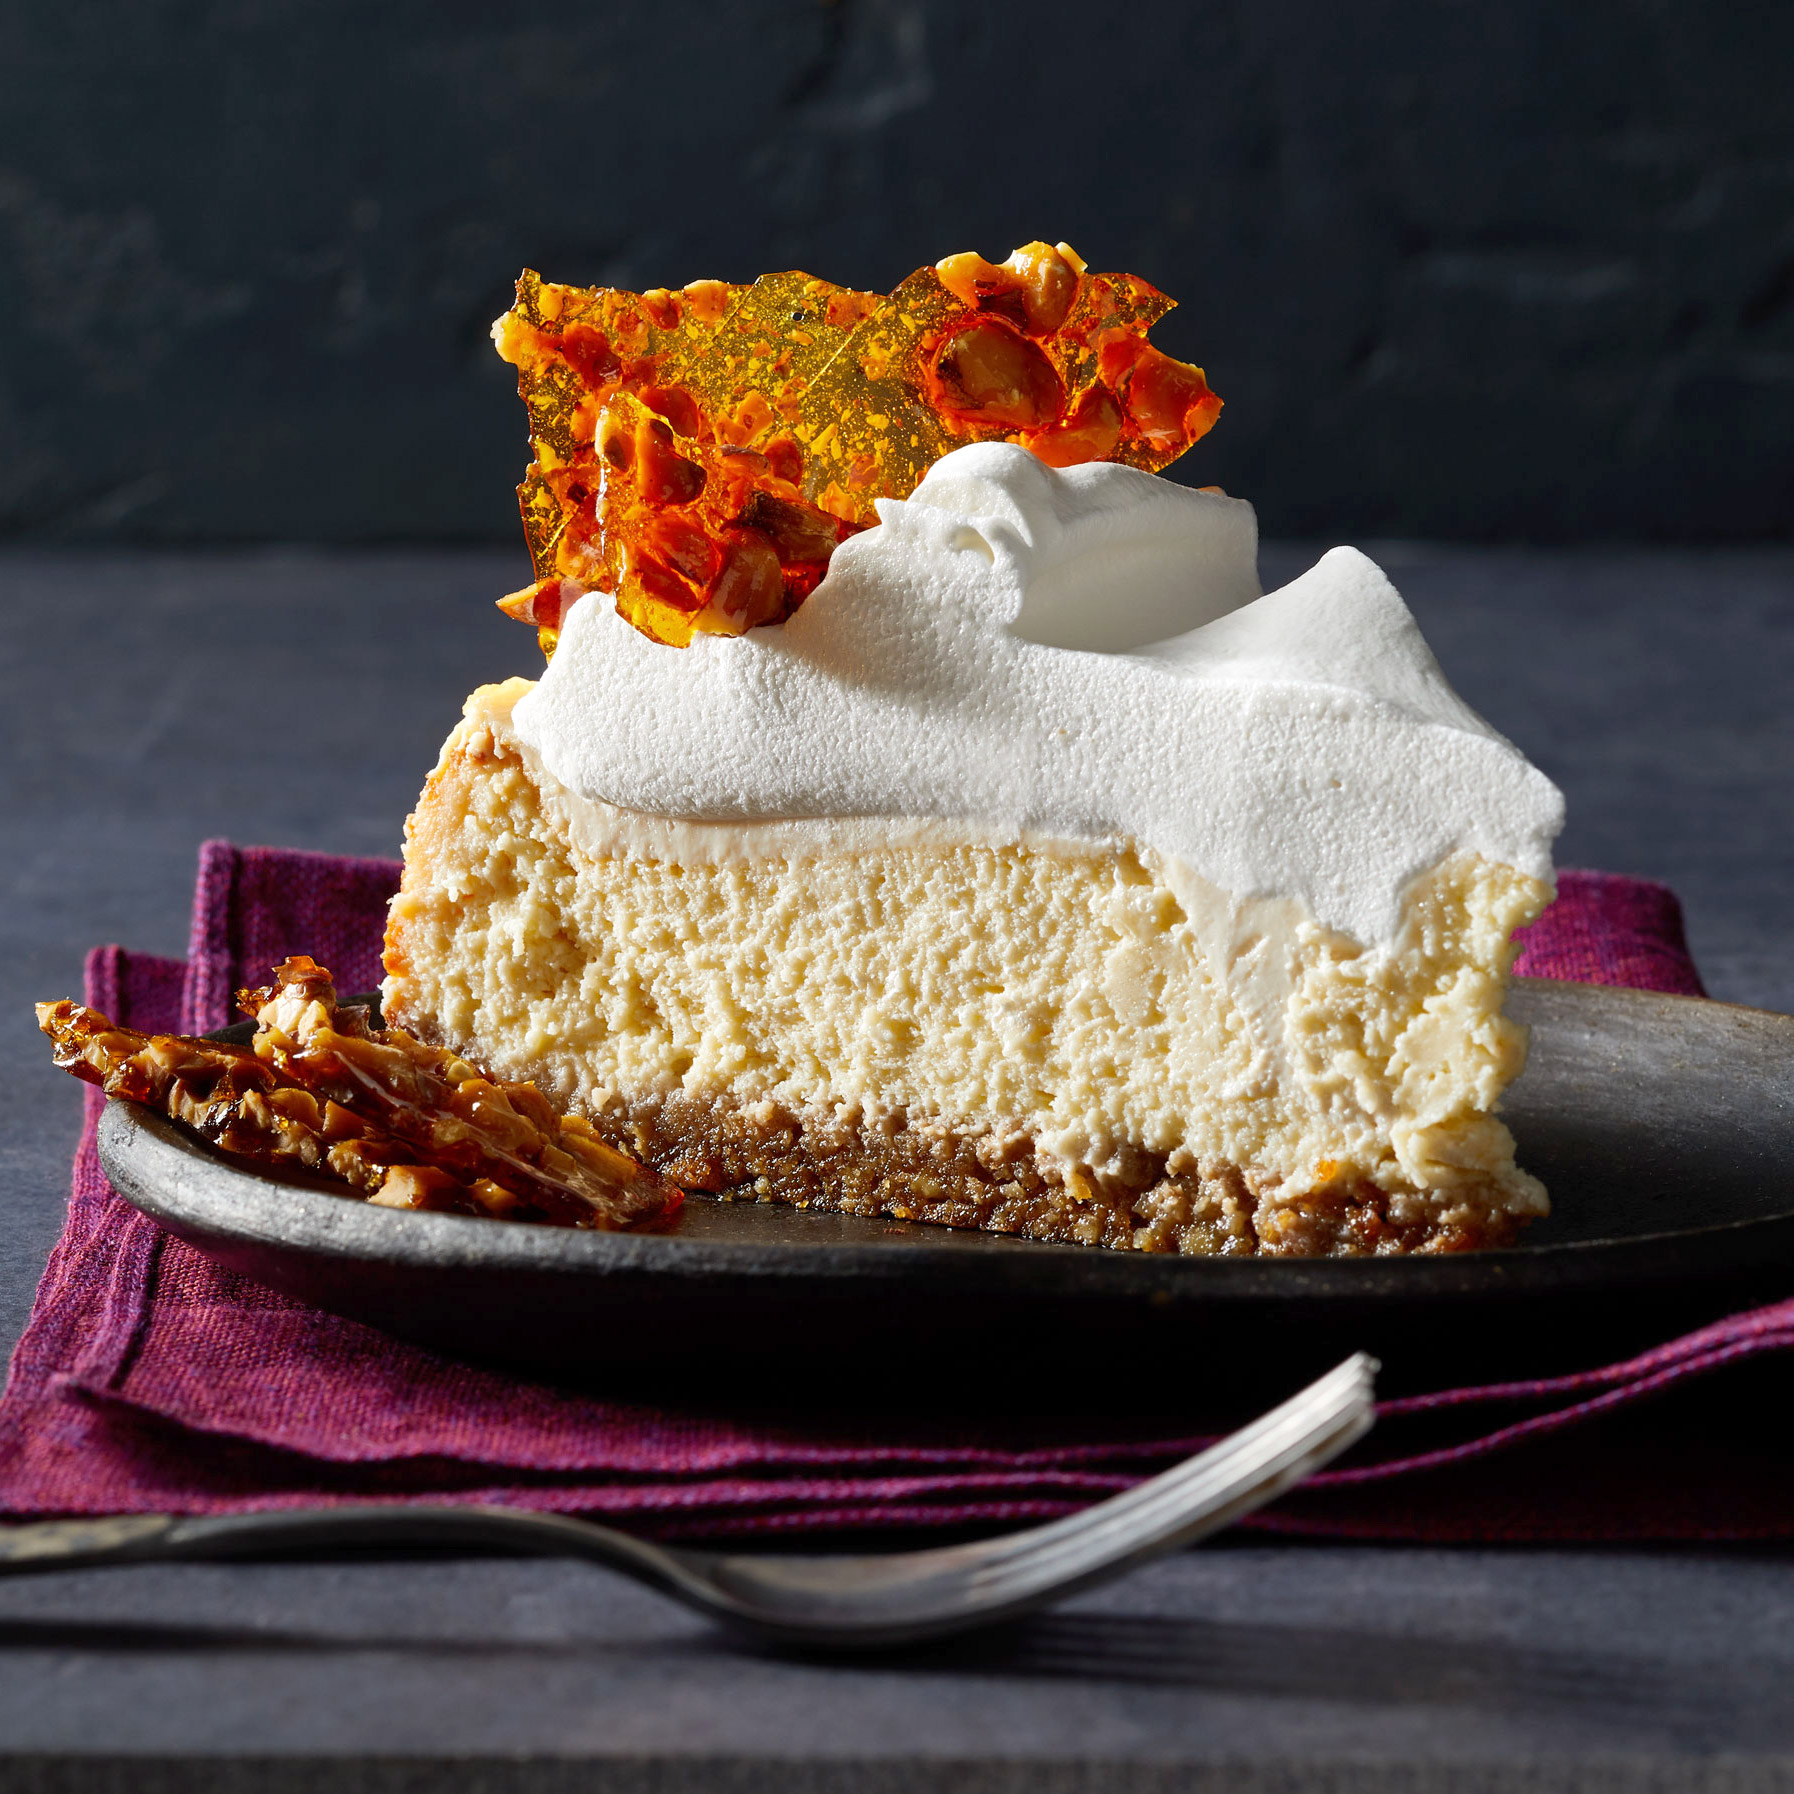 Maple Mascarpone Cheesecake